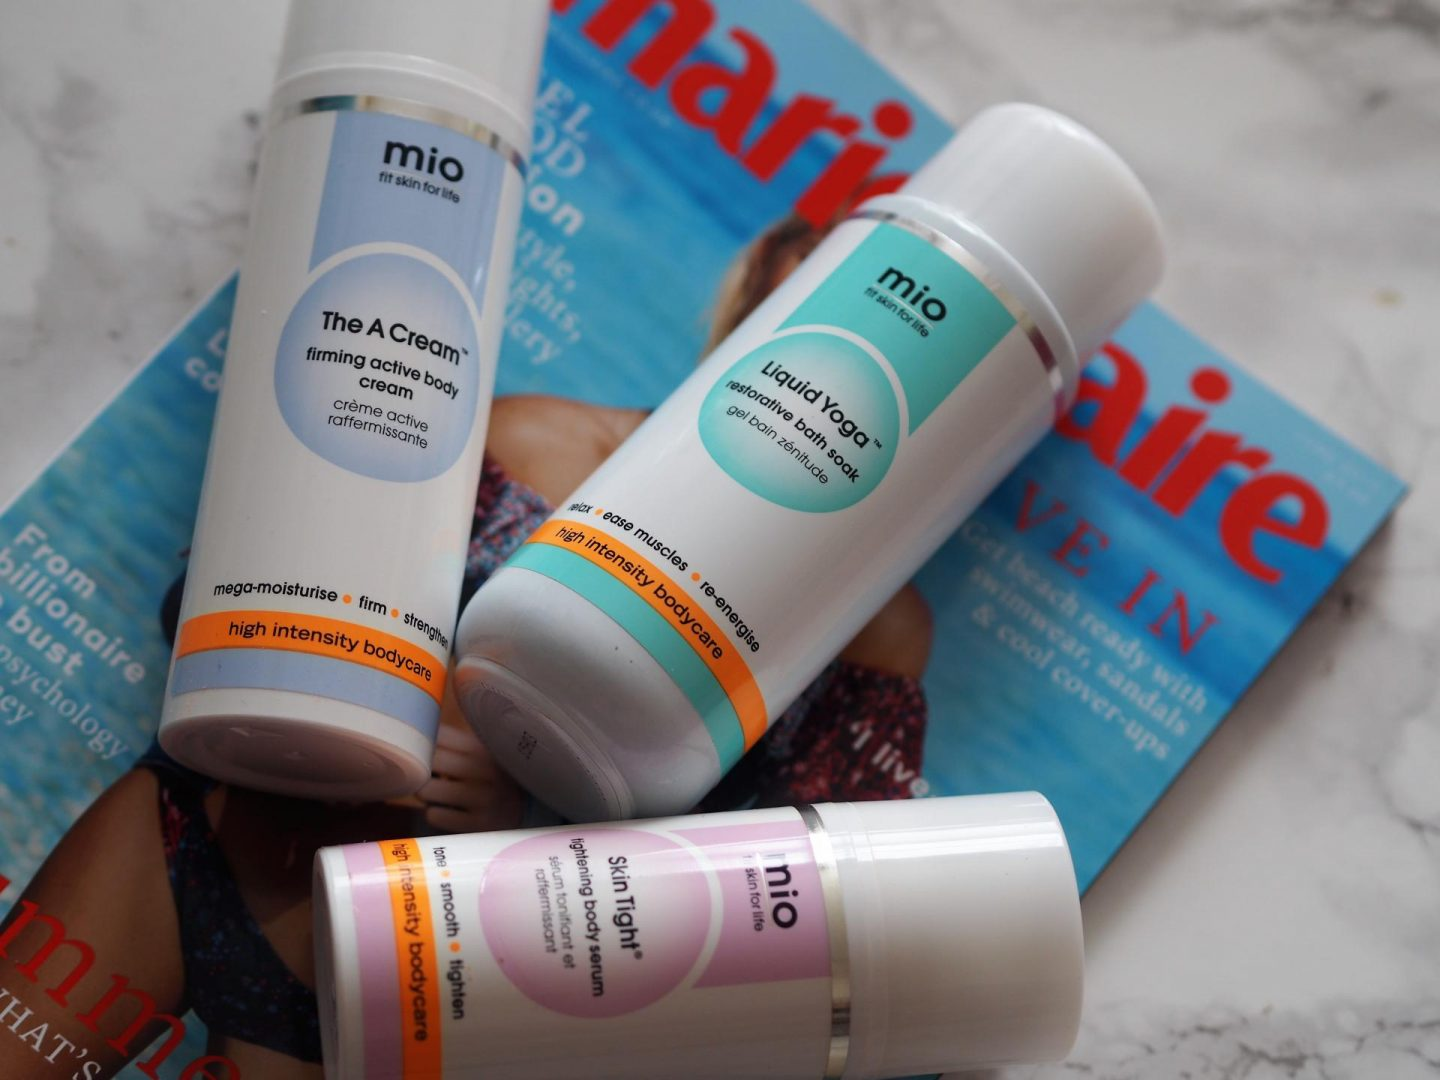 Springtime beauty haul and Mio products